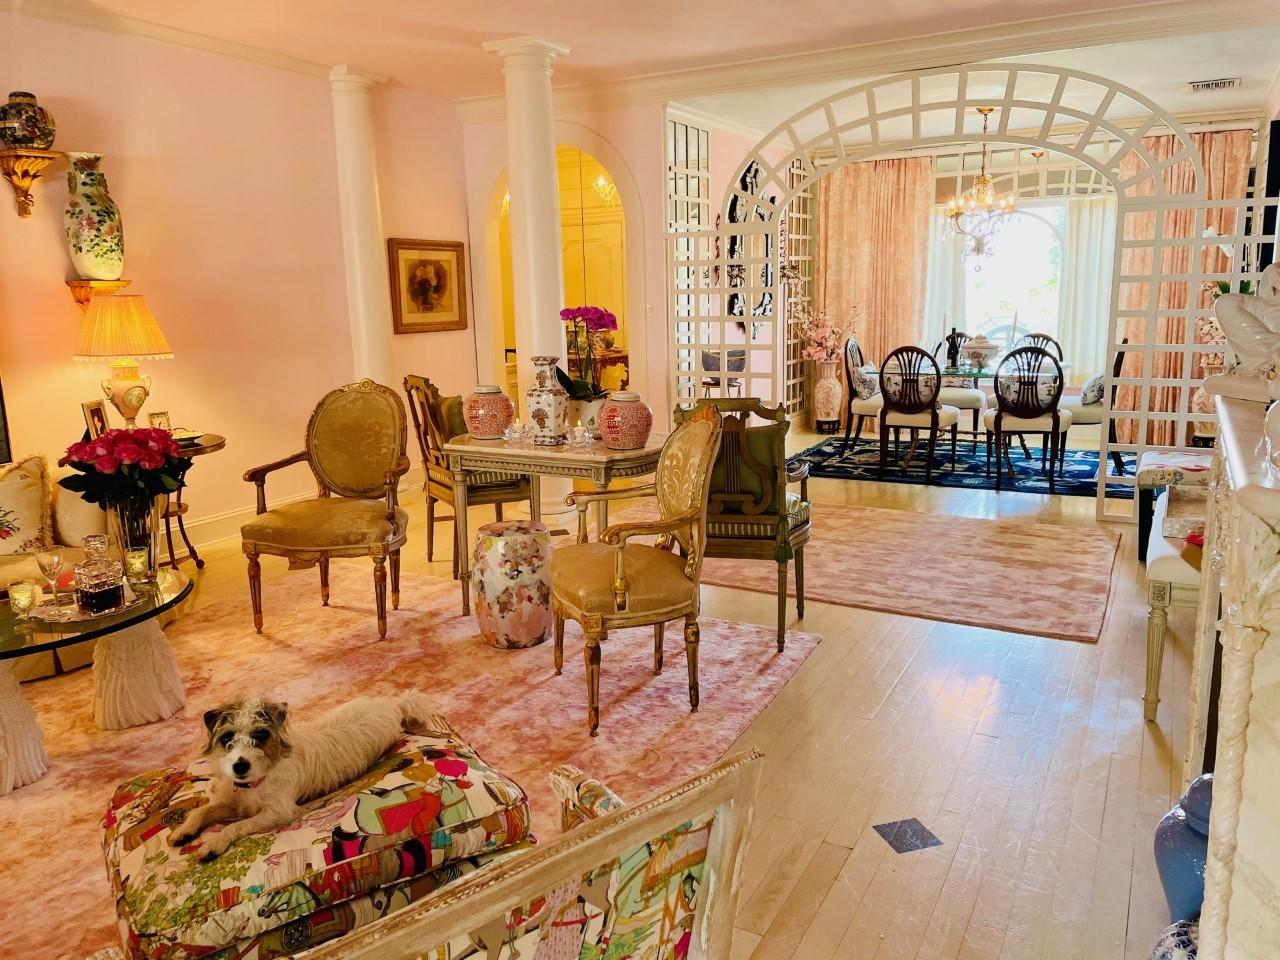 Gracious entertaining spaces, separate laundry, doorman, pool, newly renovated gym, and garage parking in a well managed, Oceanfront building in the heart of town. Walk to the best shopping and restaurants on Worth Ave!Up to 2 dogs are allowed, and there are no weight limitations. This is the perfect Palm Beach Pied-a-Terre!